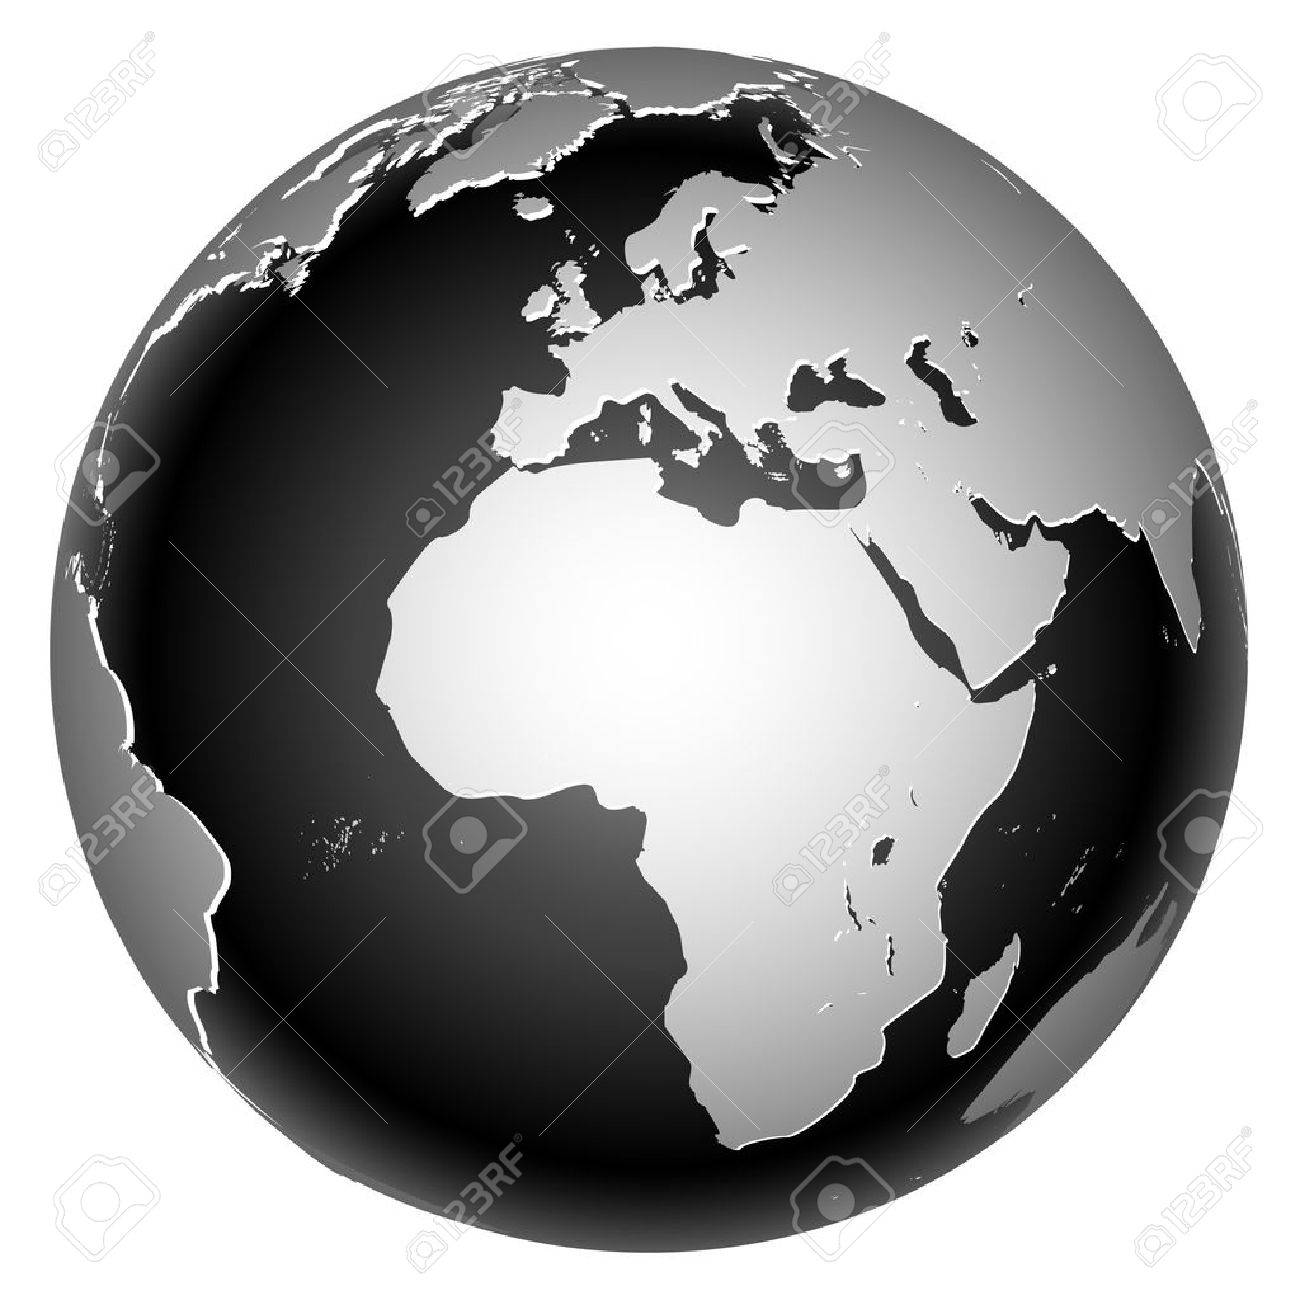 World global planet earth icon Stock Vector - 9490013